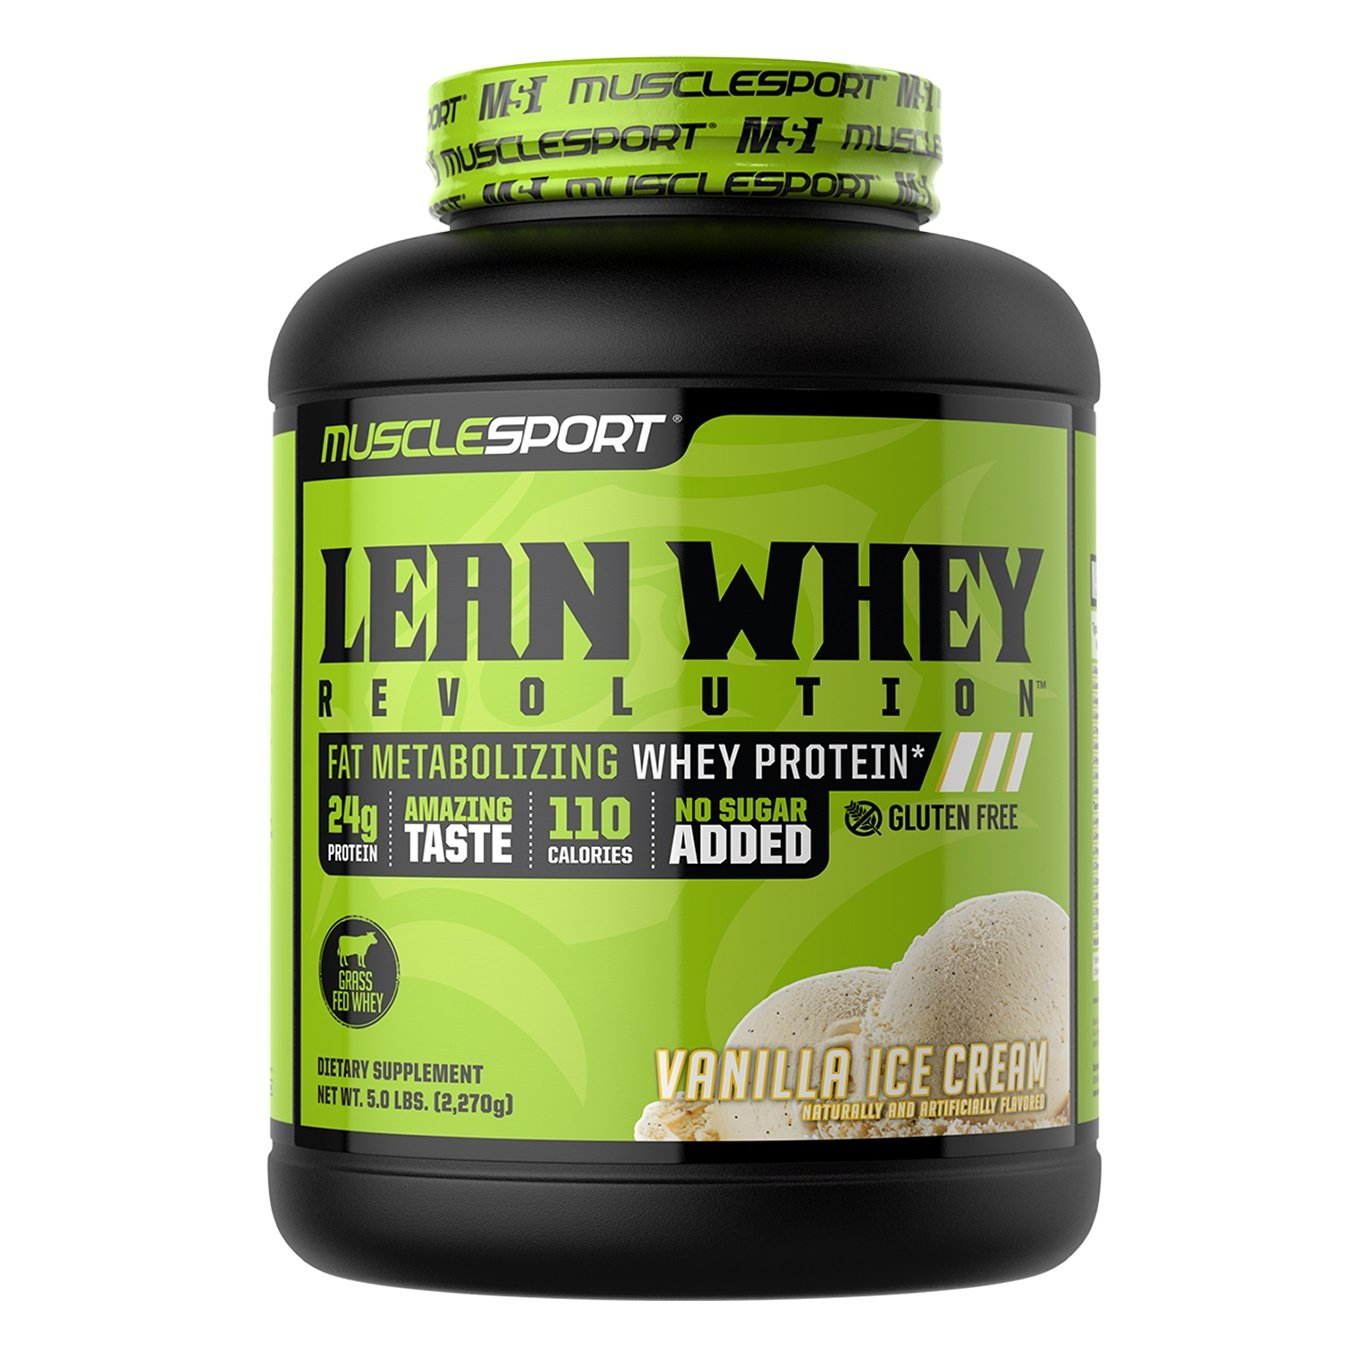 MuscleSport Lean Whey Revolution (Vanilla Ice Cream, 5lb) Protein Powder, Whey Protein Isolate, Fat Burning, Weight Loss, Low Calorie, Low Carb, Low Fat, Incredible Flavors by Musclesport